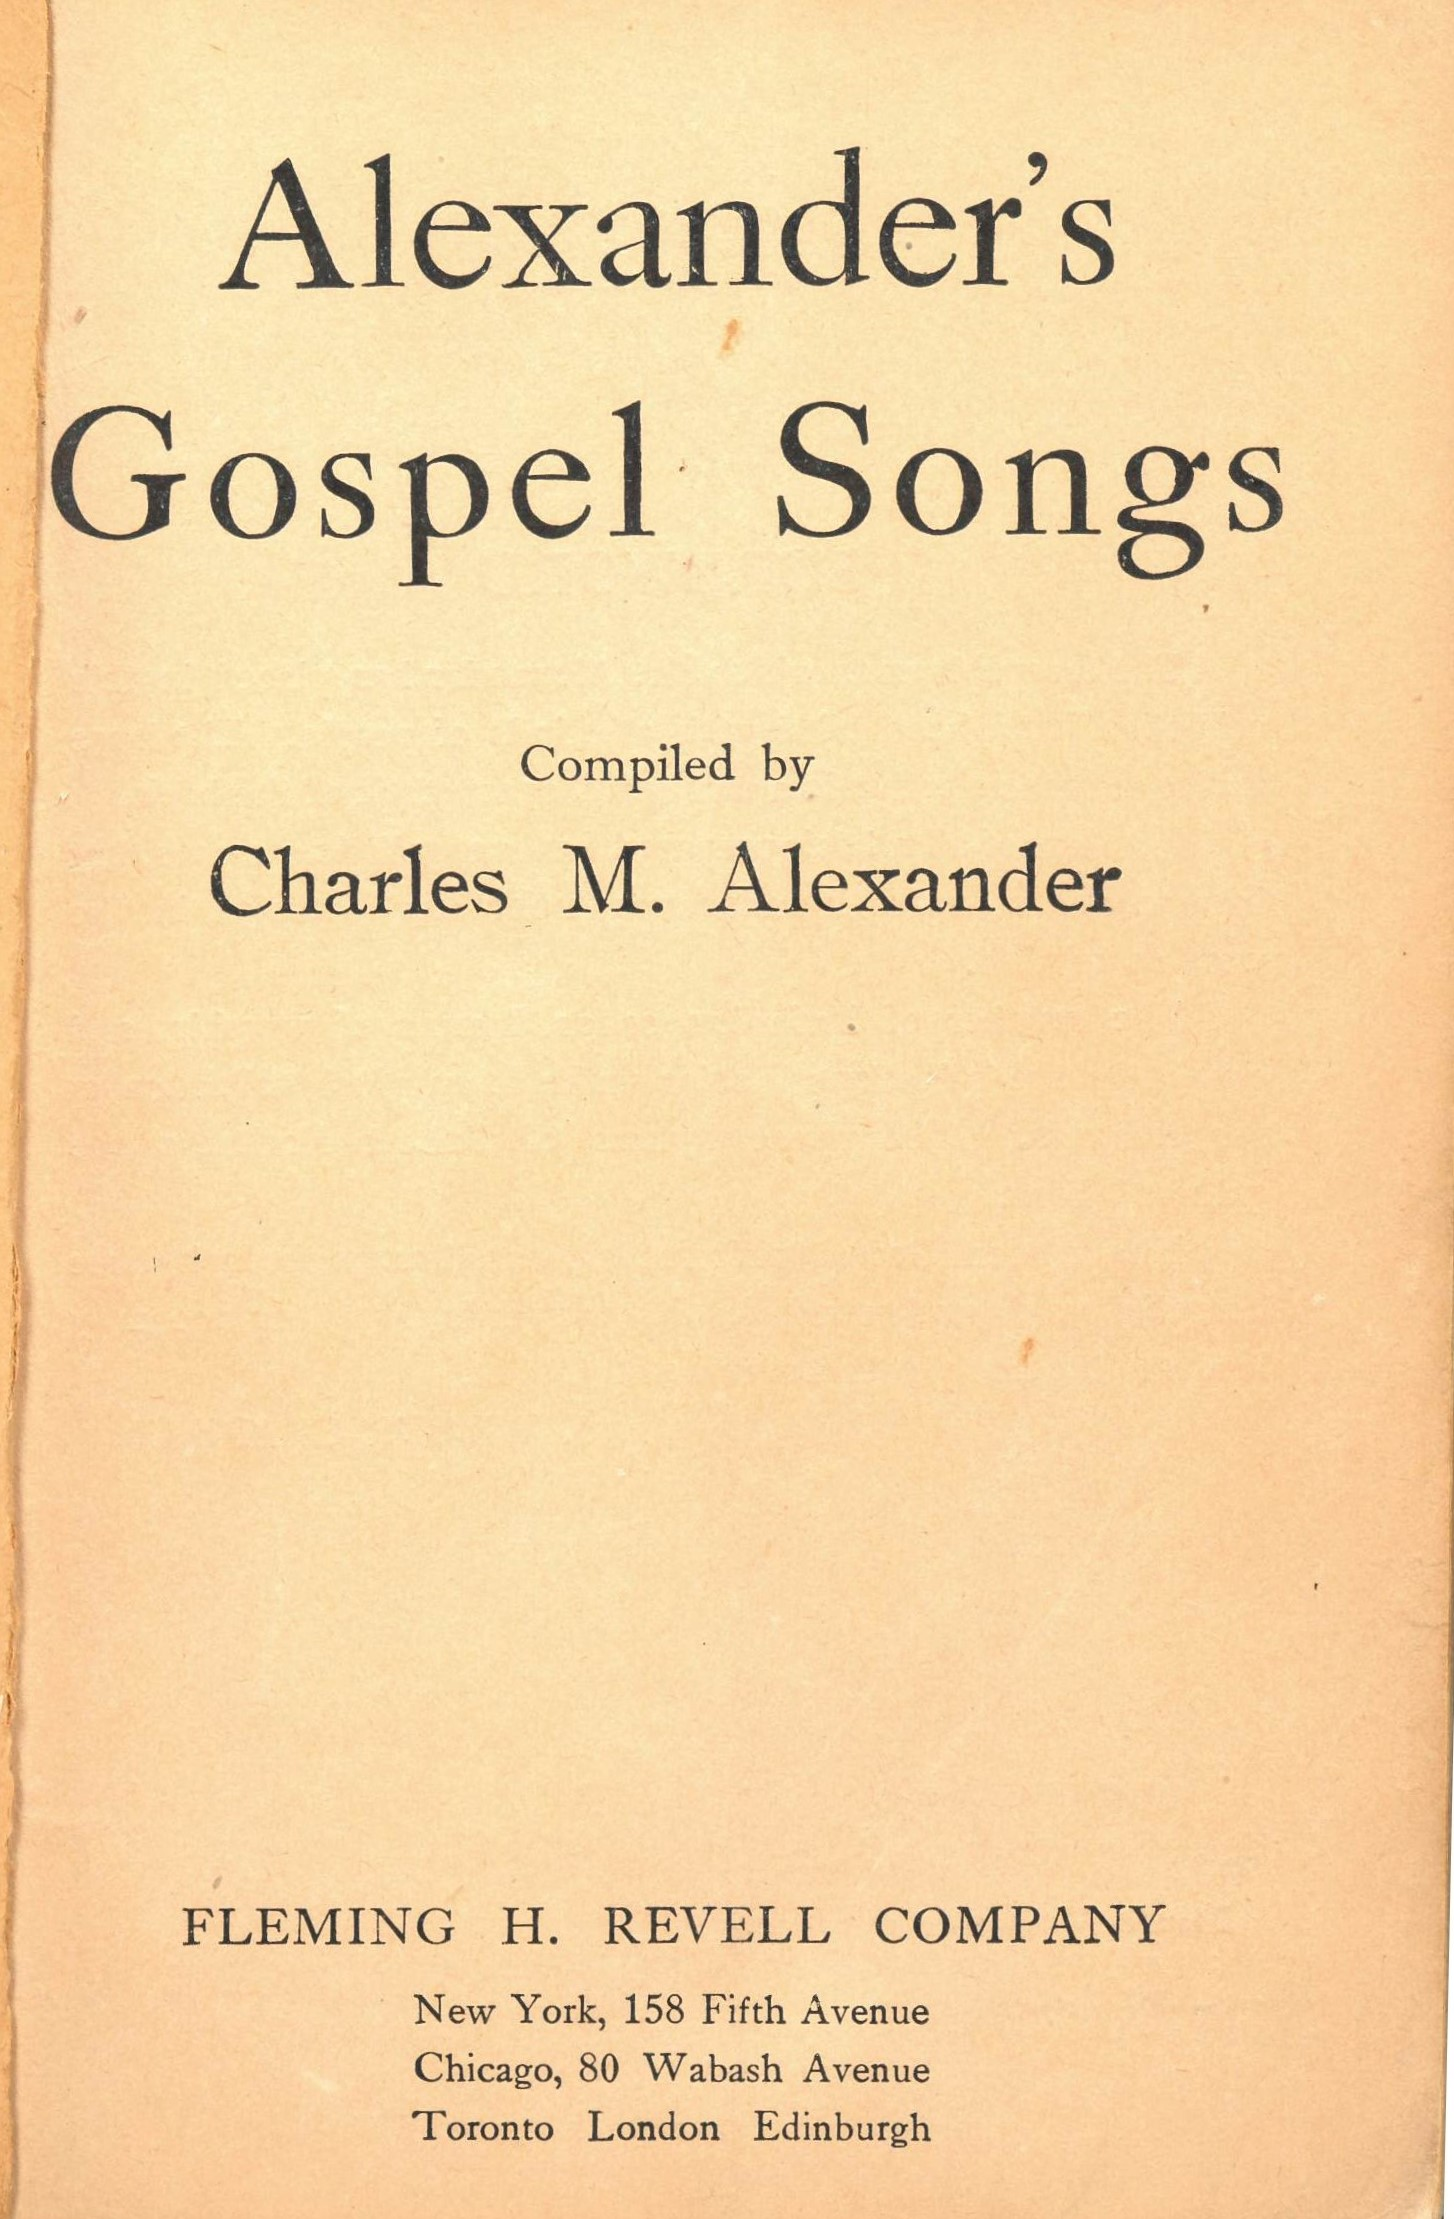 Alexander's Gospel Songs. Charles M. Alexander, Compiler. Fleming H. Revell Company: New York, 1908. Title page.